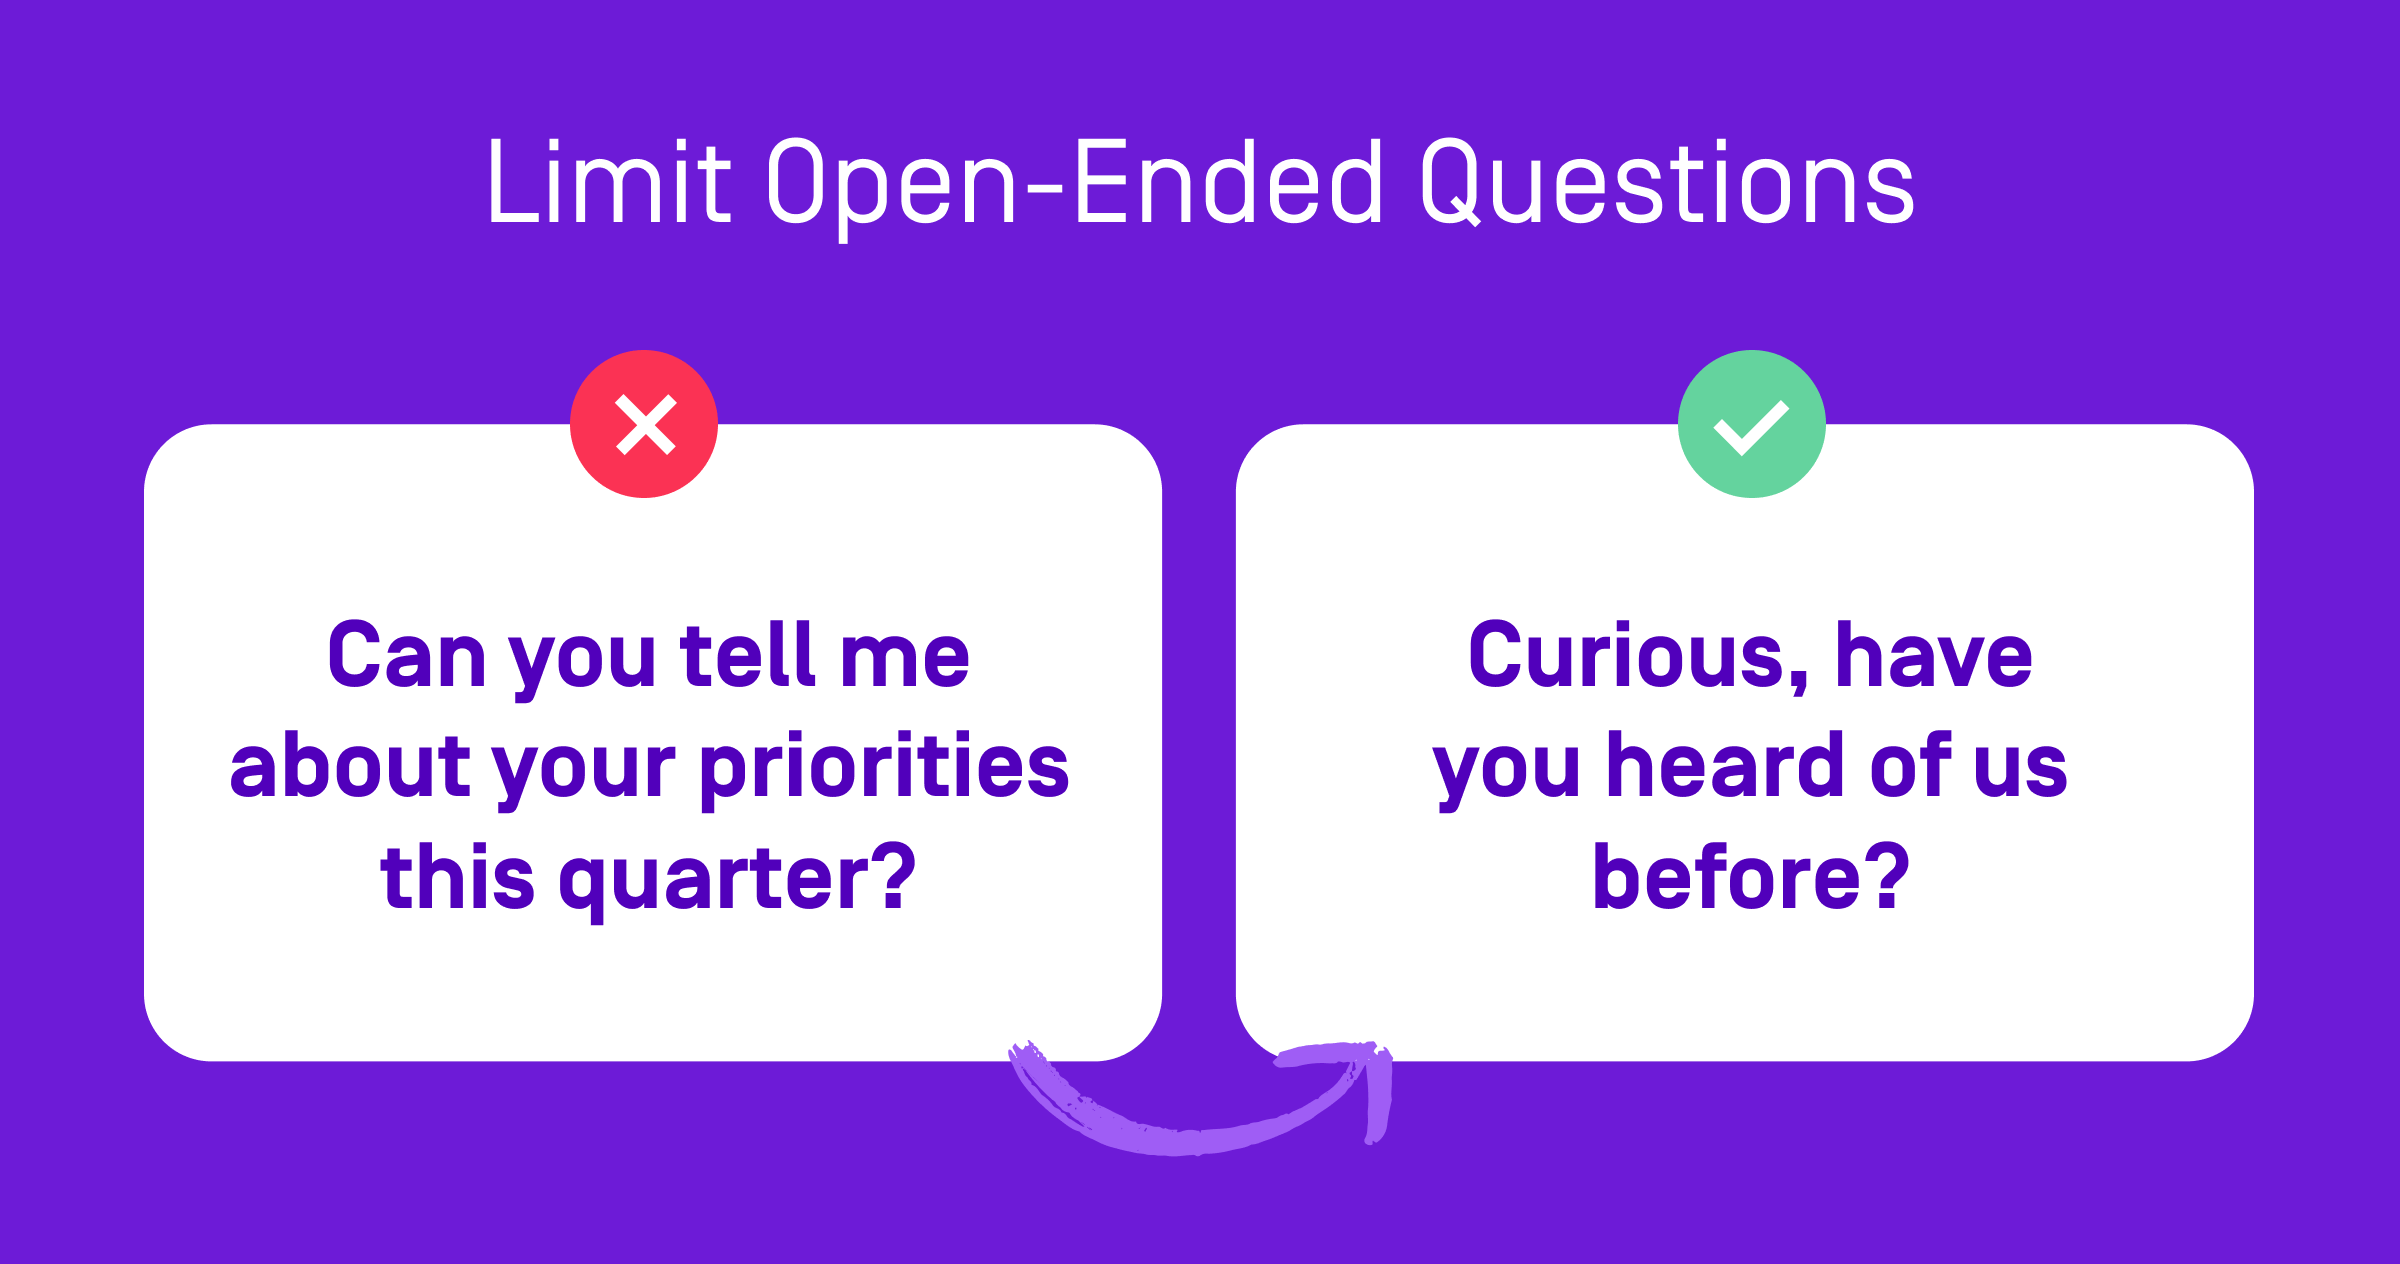 limit open-ended questions